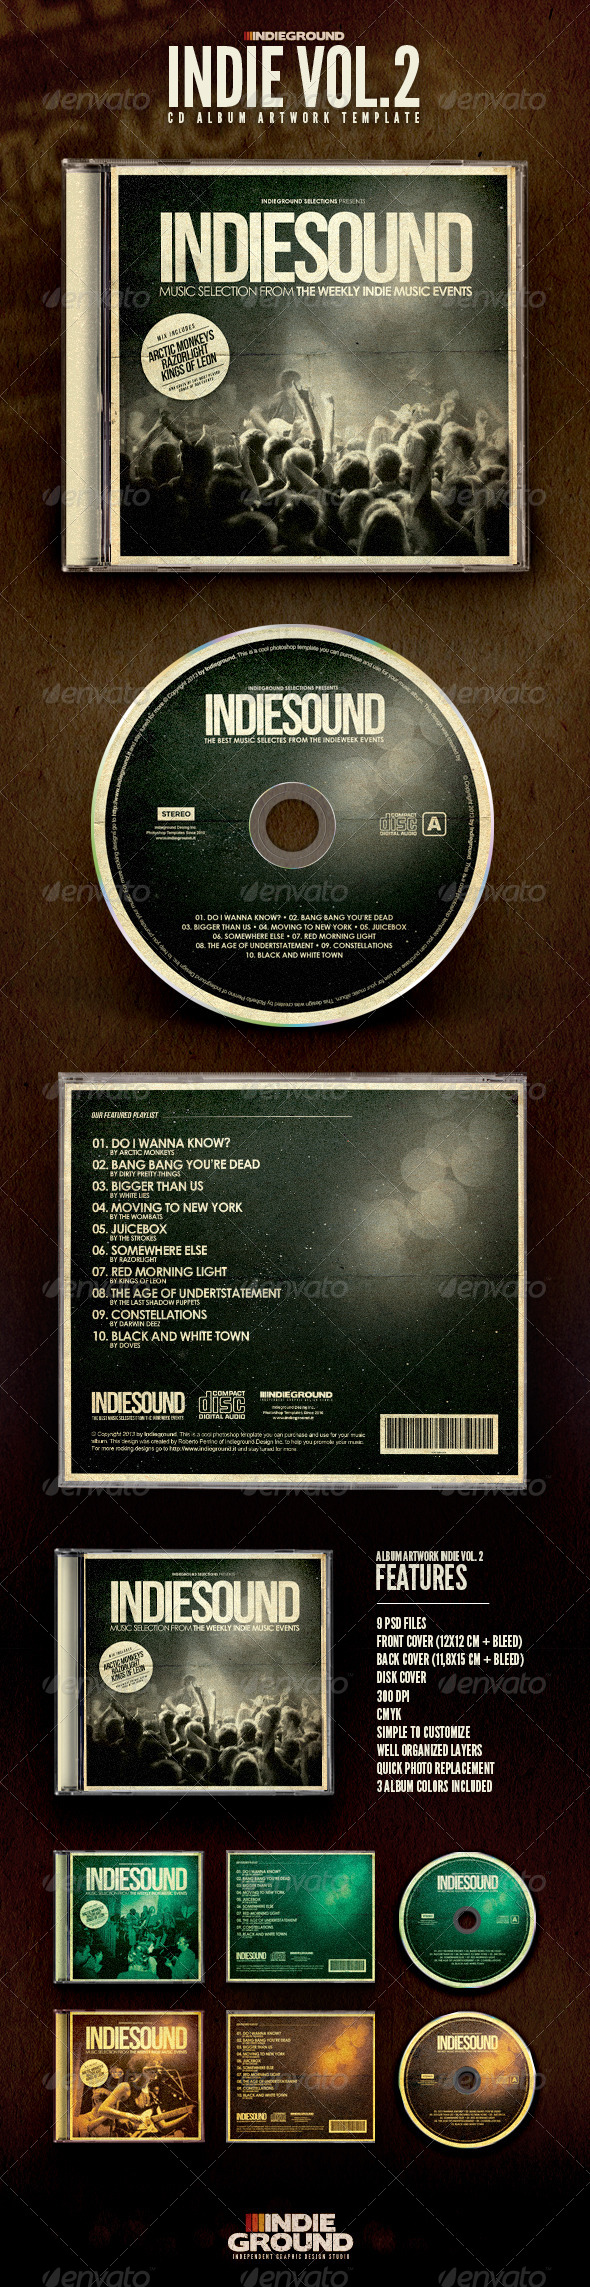 GraphicRiver Indie CD Album Artwork Vol 2 6658996